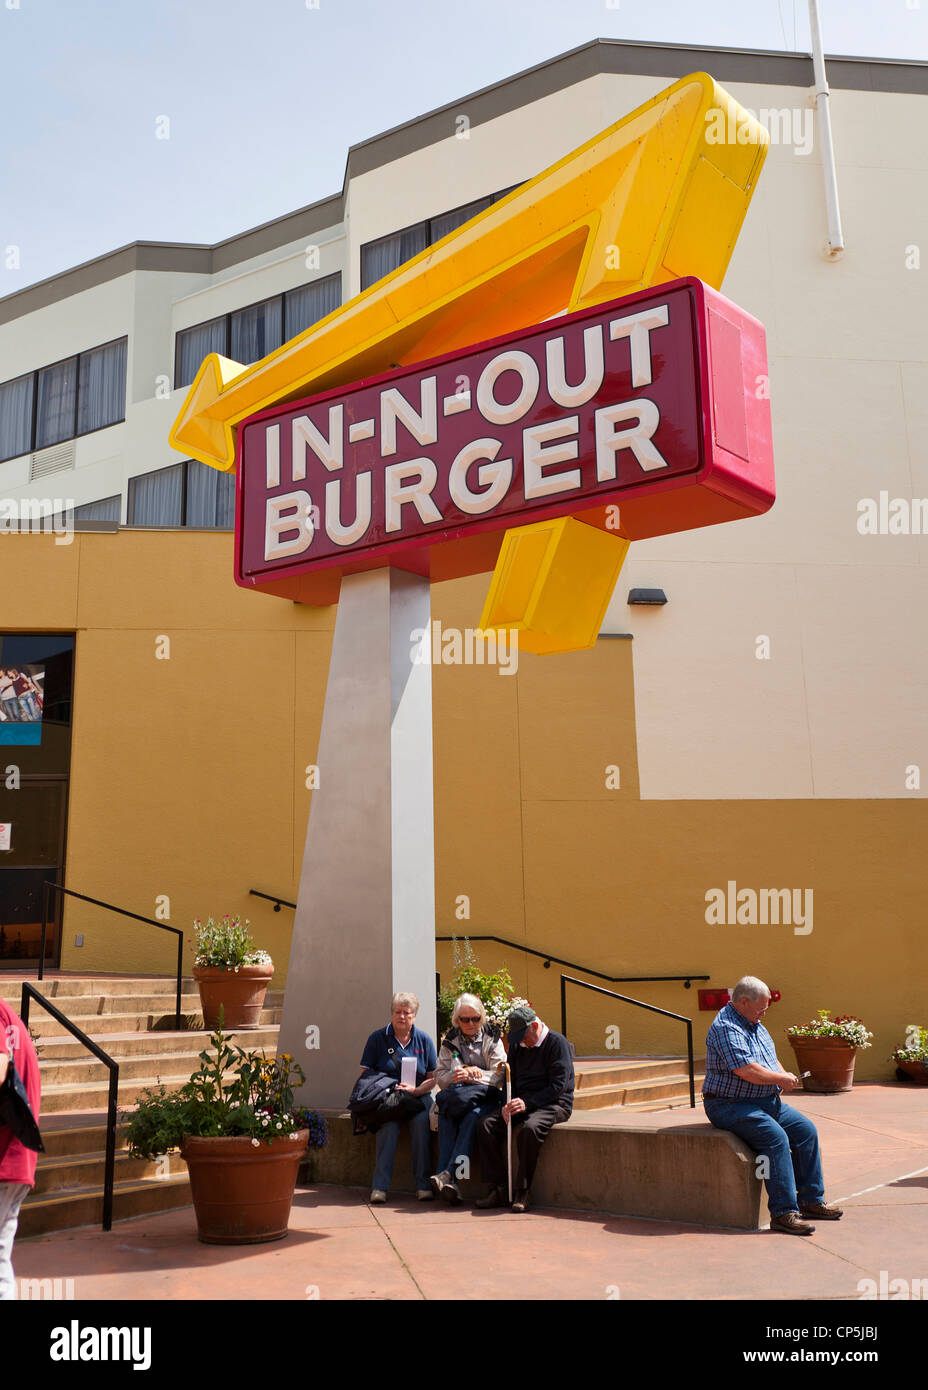 In And Out Burger Stock Symbol The Best Burger In 2018